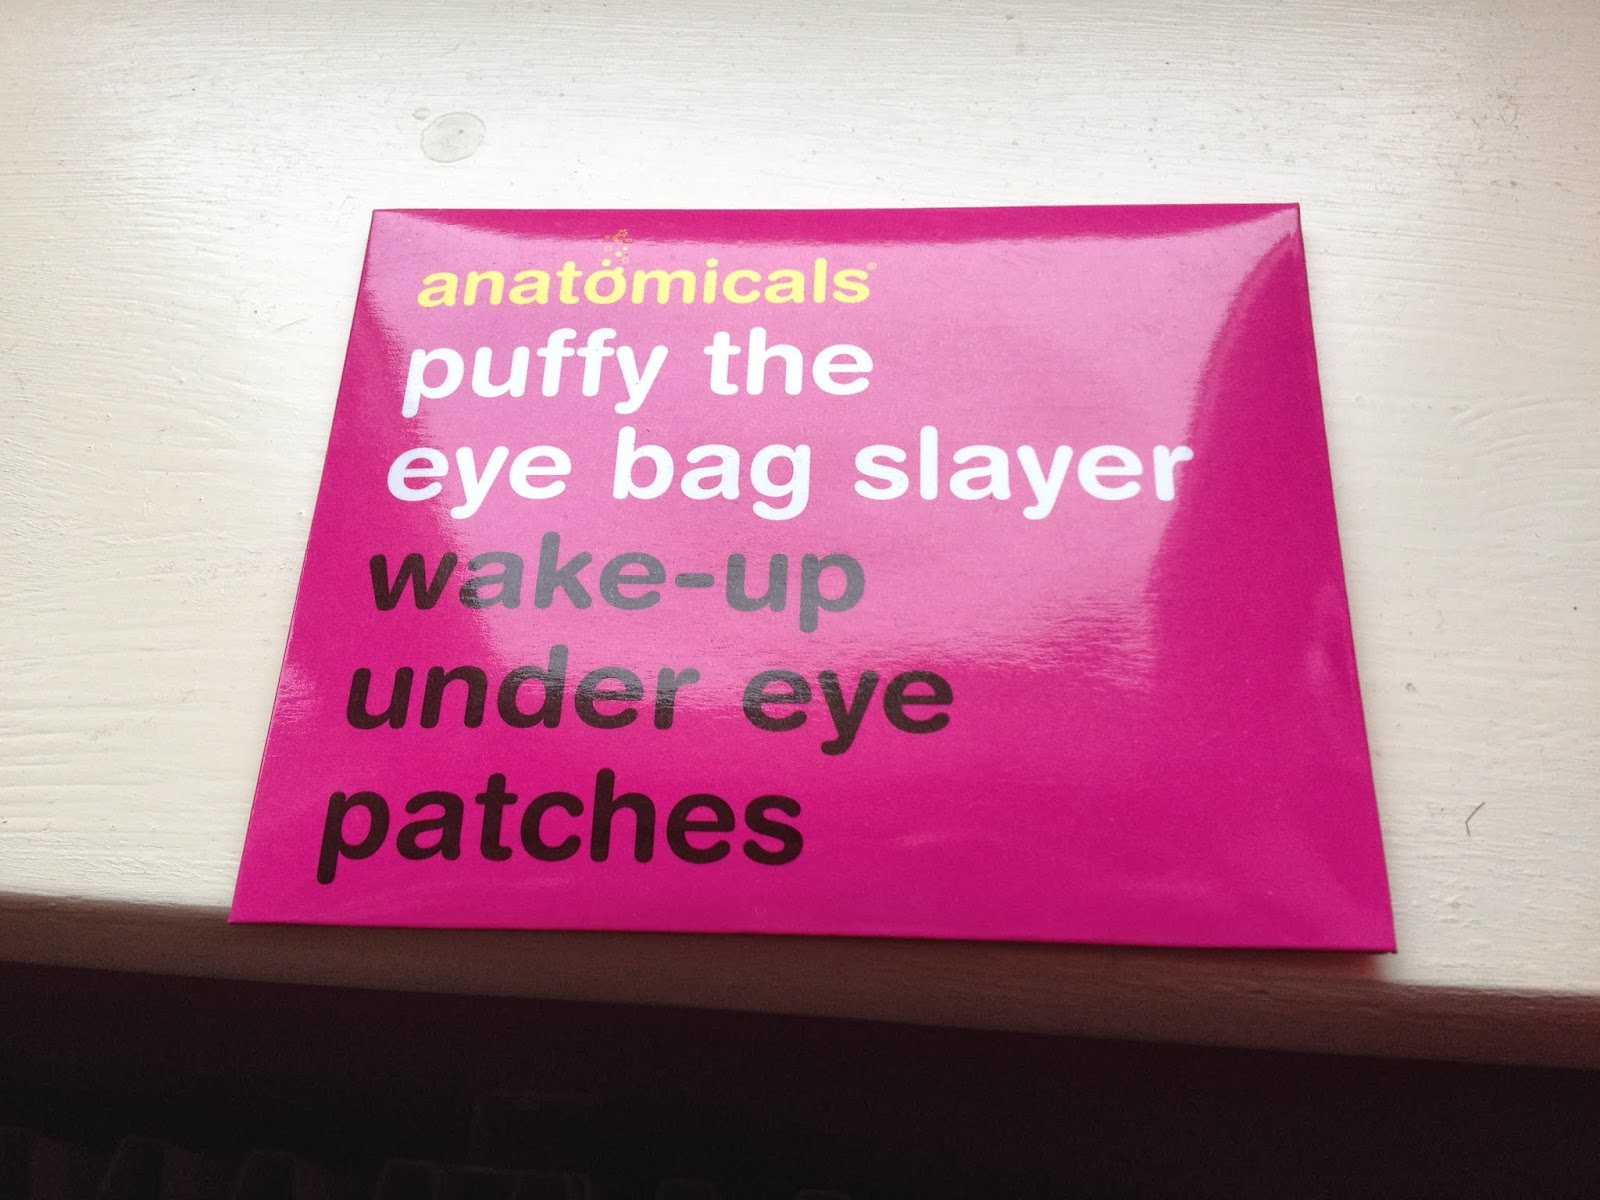 Anatomicals Puffy The Eye Bag Slayer Wake-Up Under Eye Patches